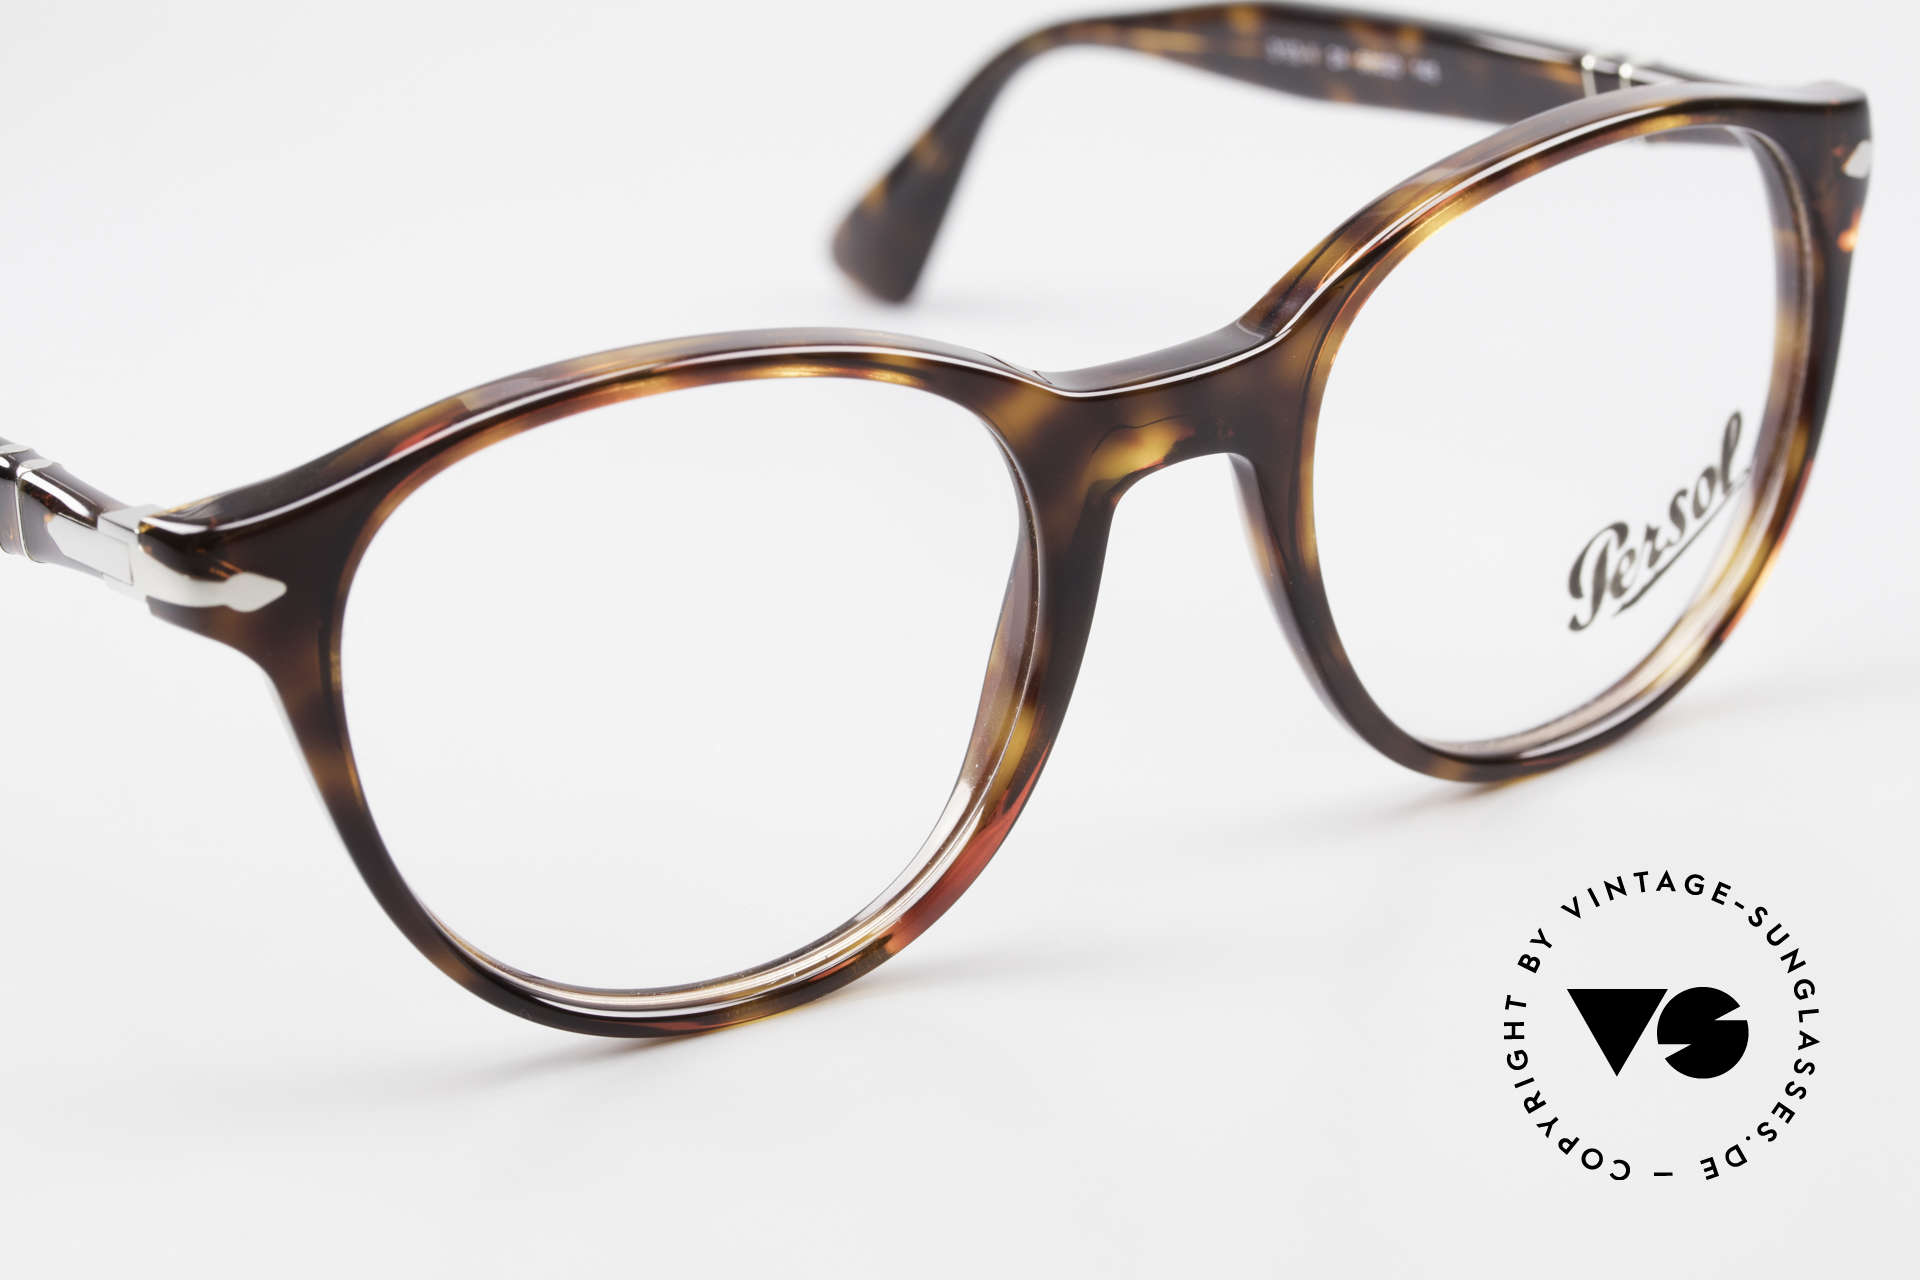 Persol 3153 Timeless Panto Unisex Frame, reissue of the old vintage Persol RATTI models, Made for Men and Women